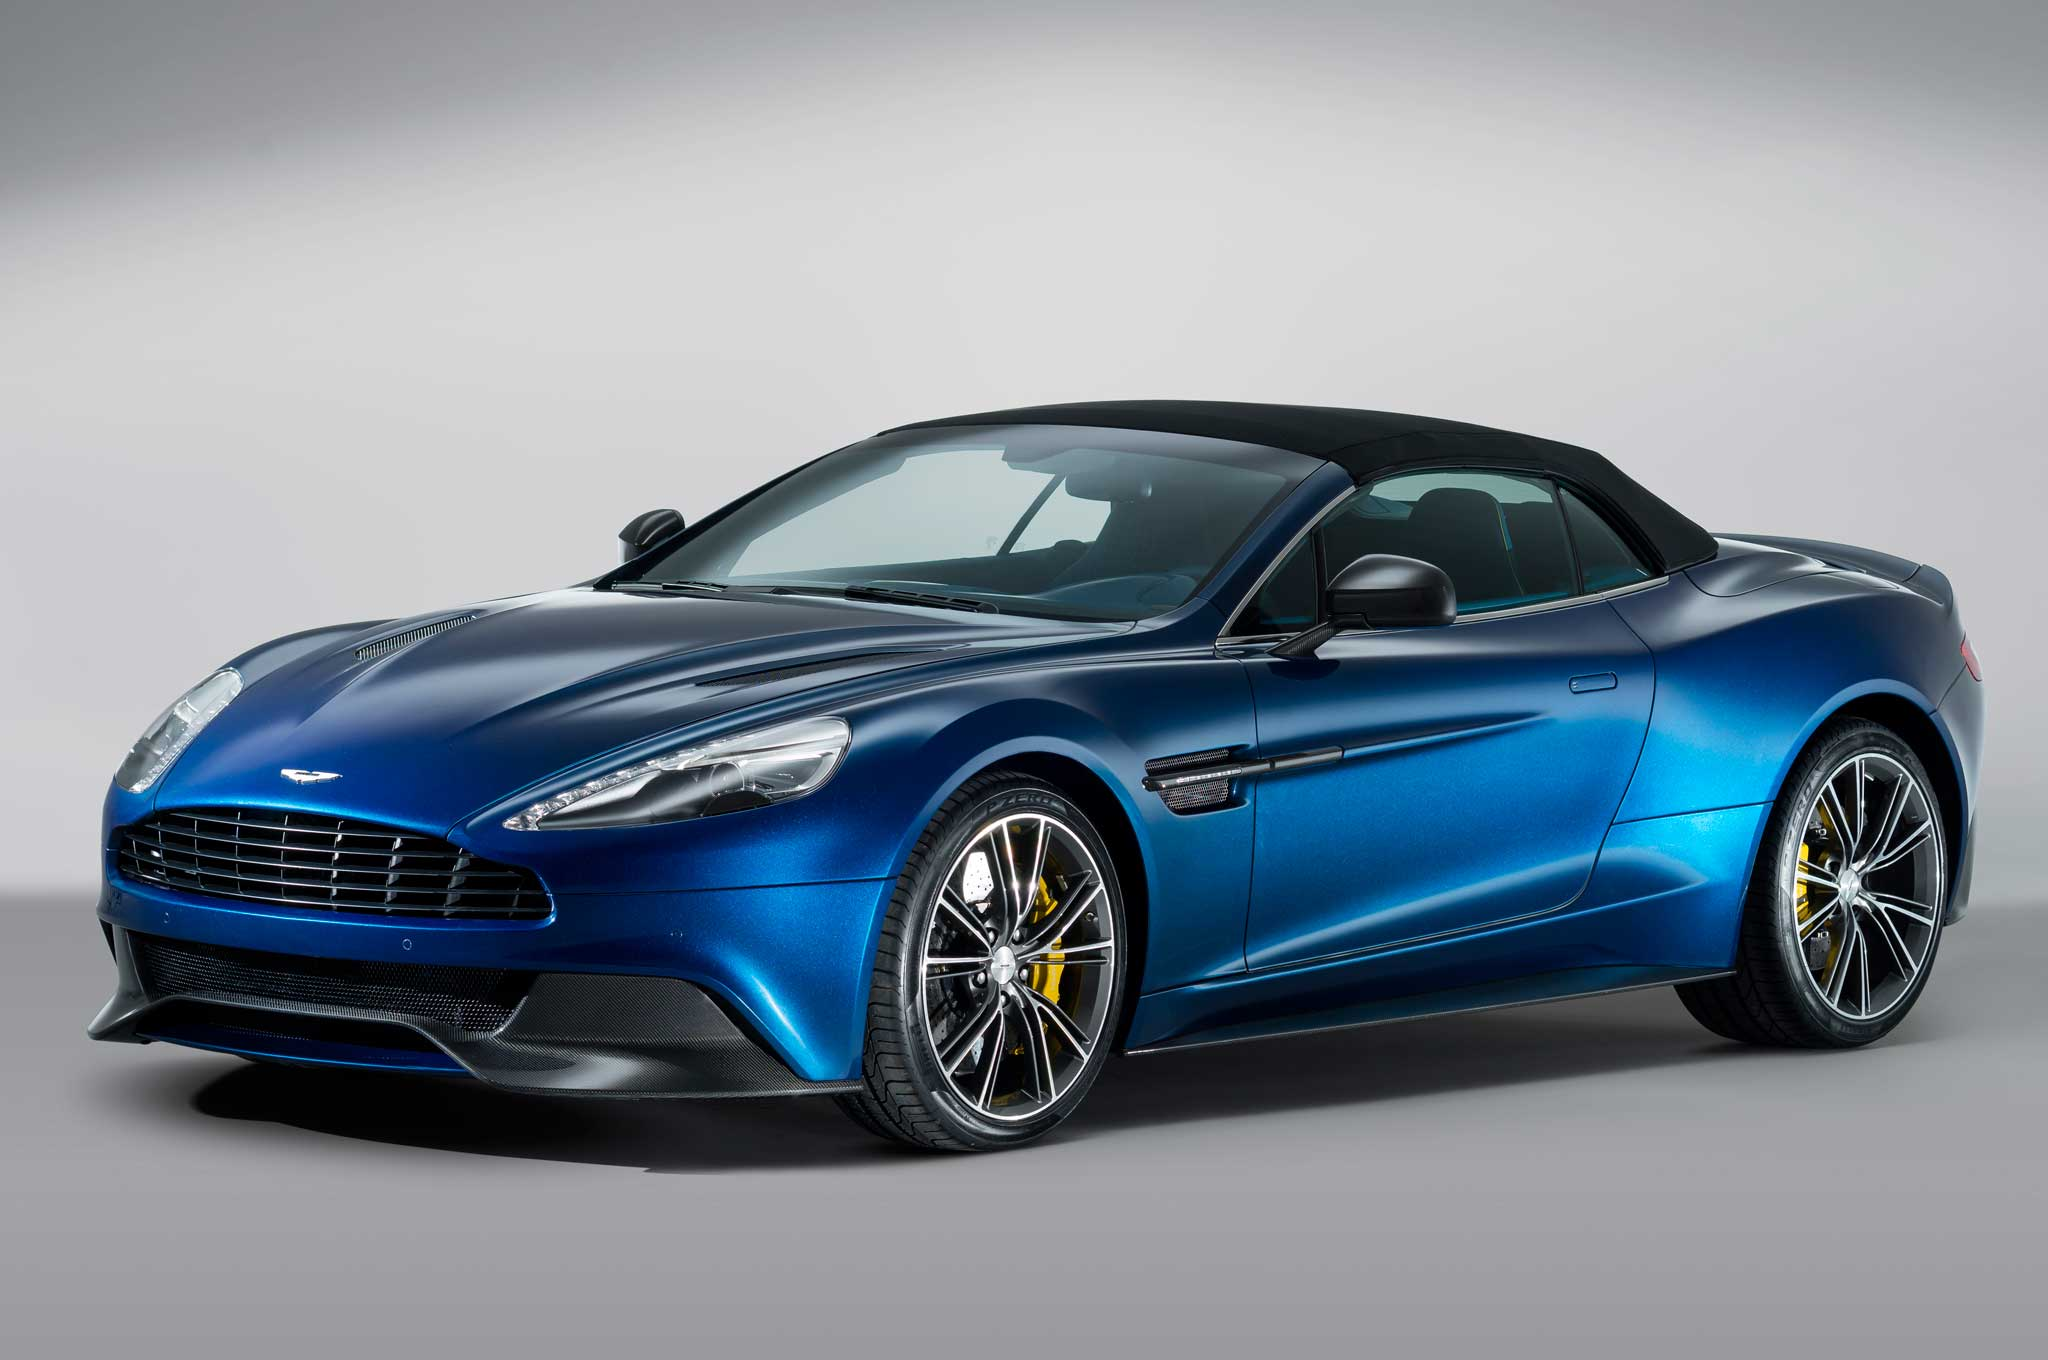 2014 Aston Martin Vanquish Volante Front Three Quarter Roof Up1